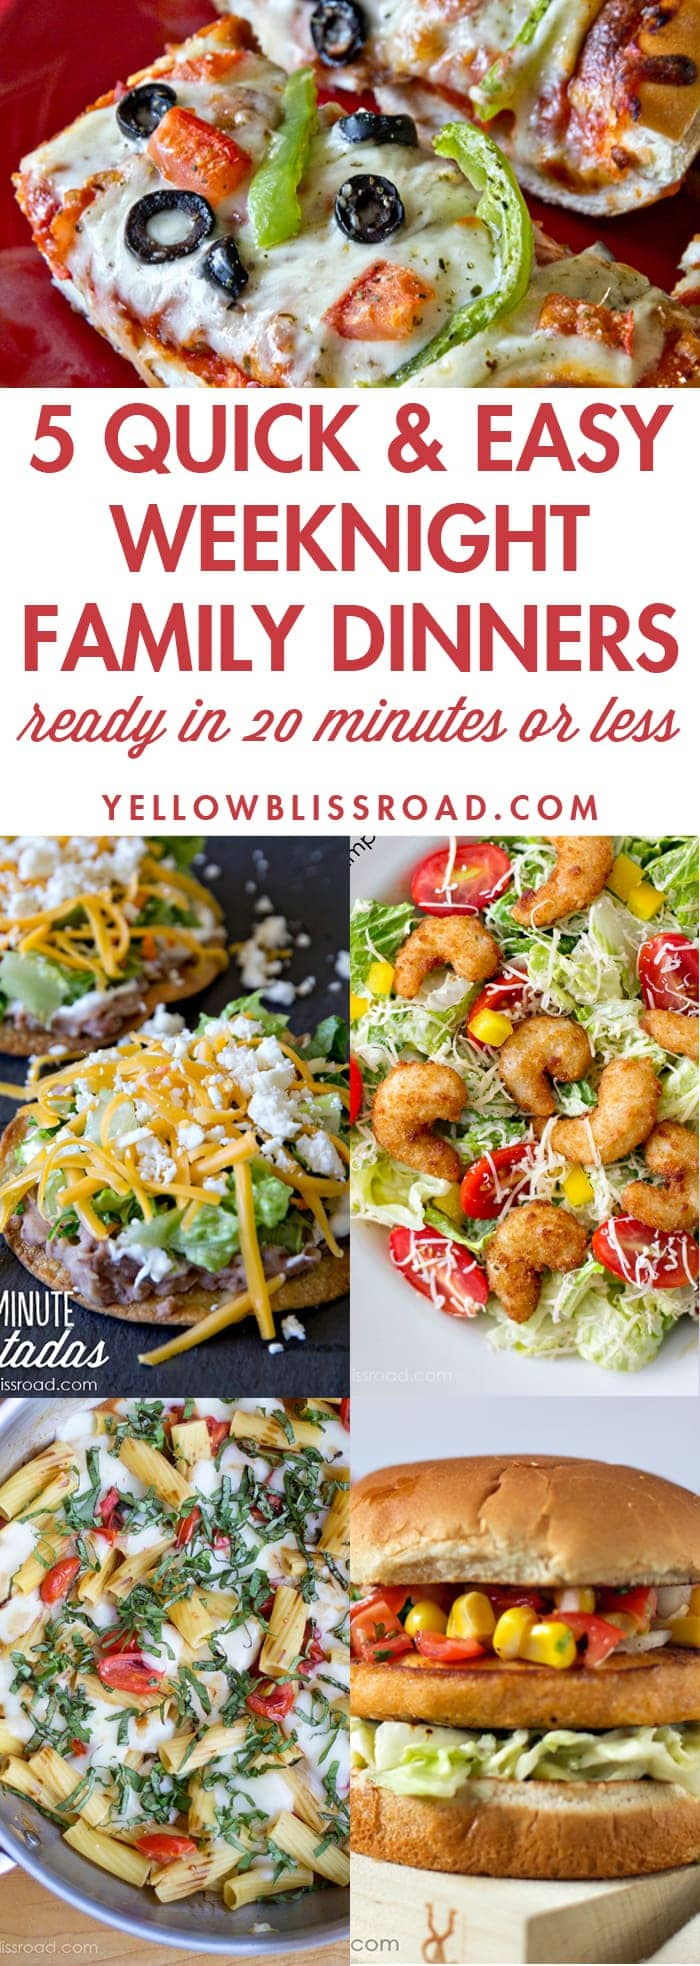 Five Quick and Easy Weeknight Dinners ready in 20 minutes or less